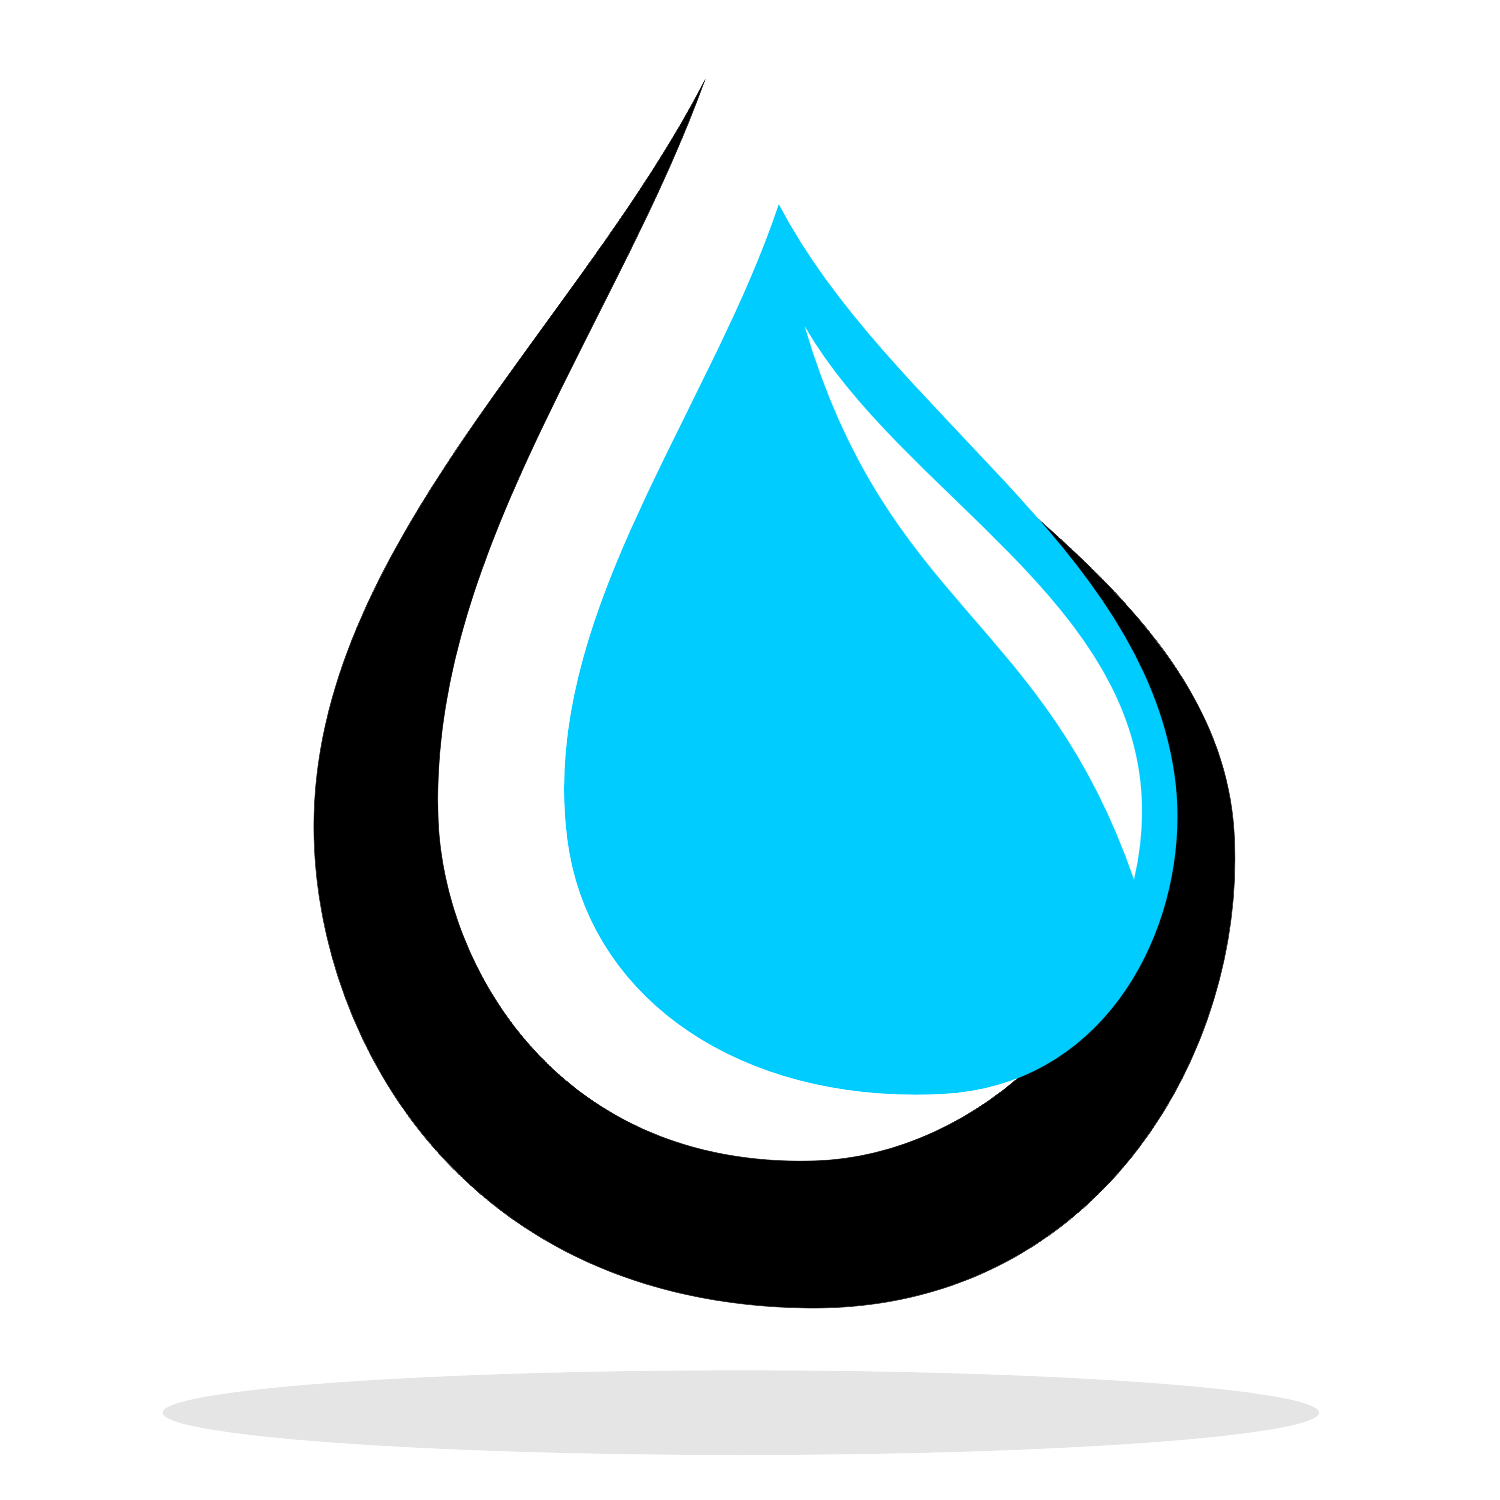 Vector for free use: Water drop logo.